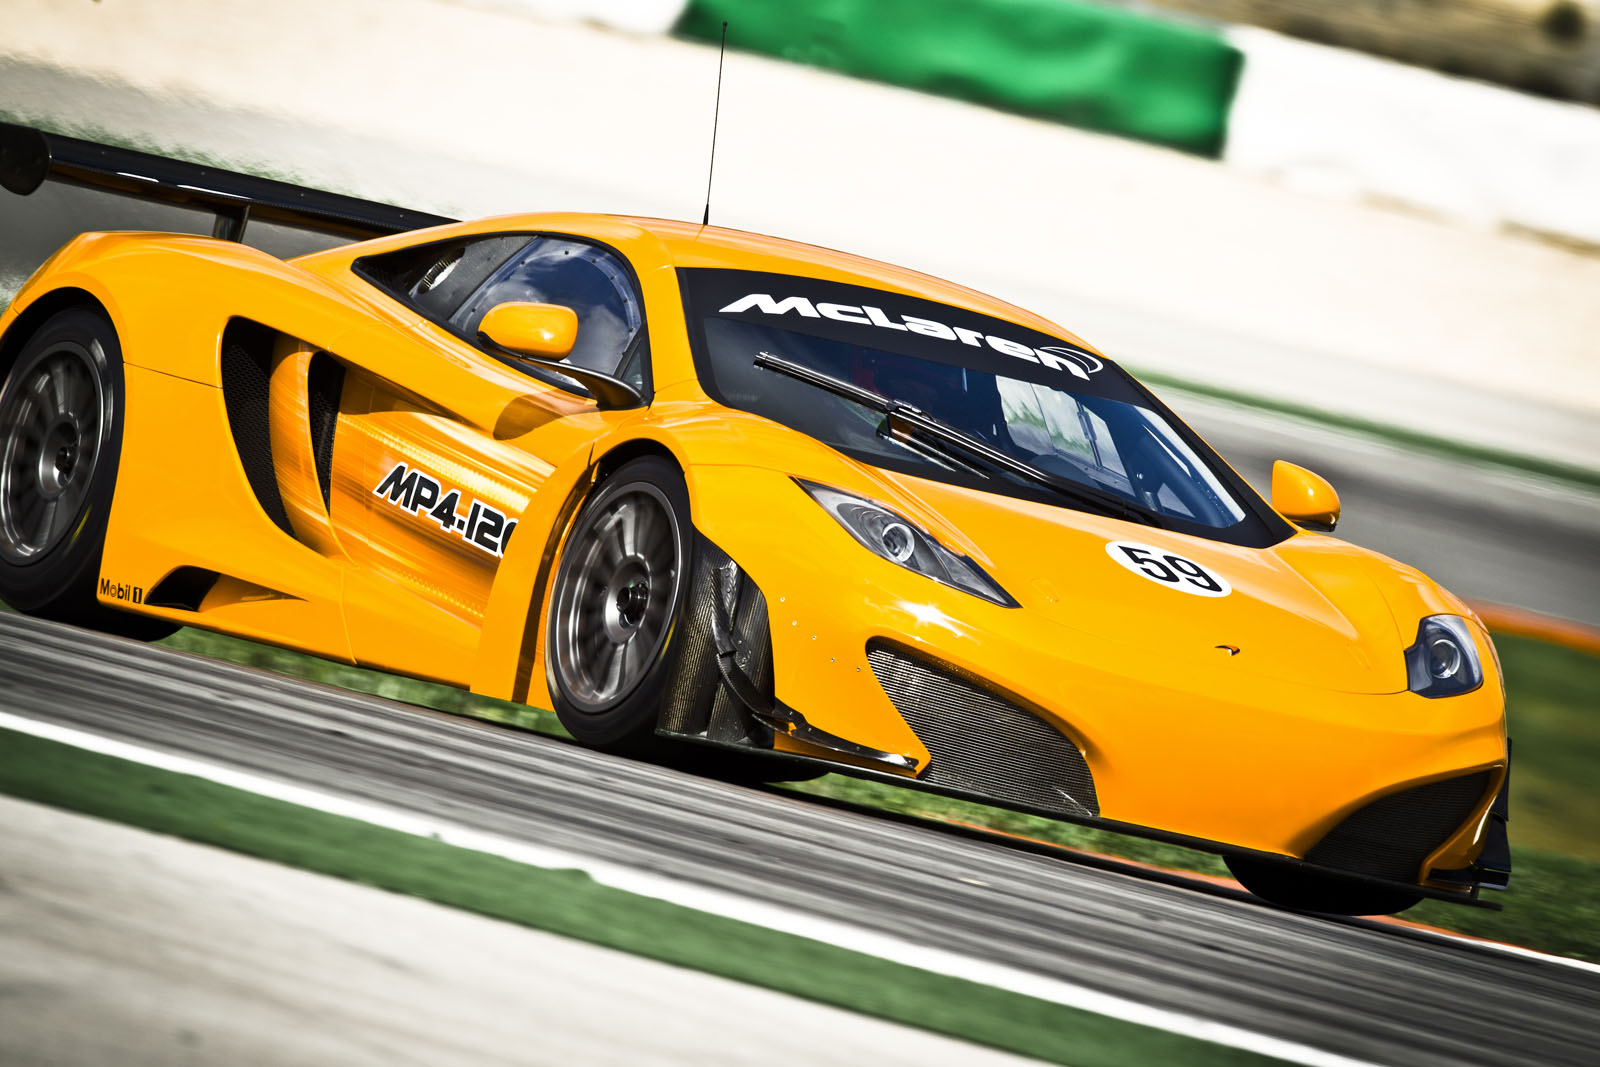 MP4 12C GT3 9 MP4 12C GT3 Variant Fuel Economic and Energy Efficient